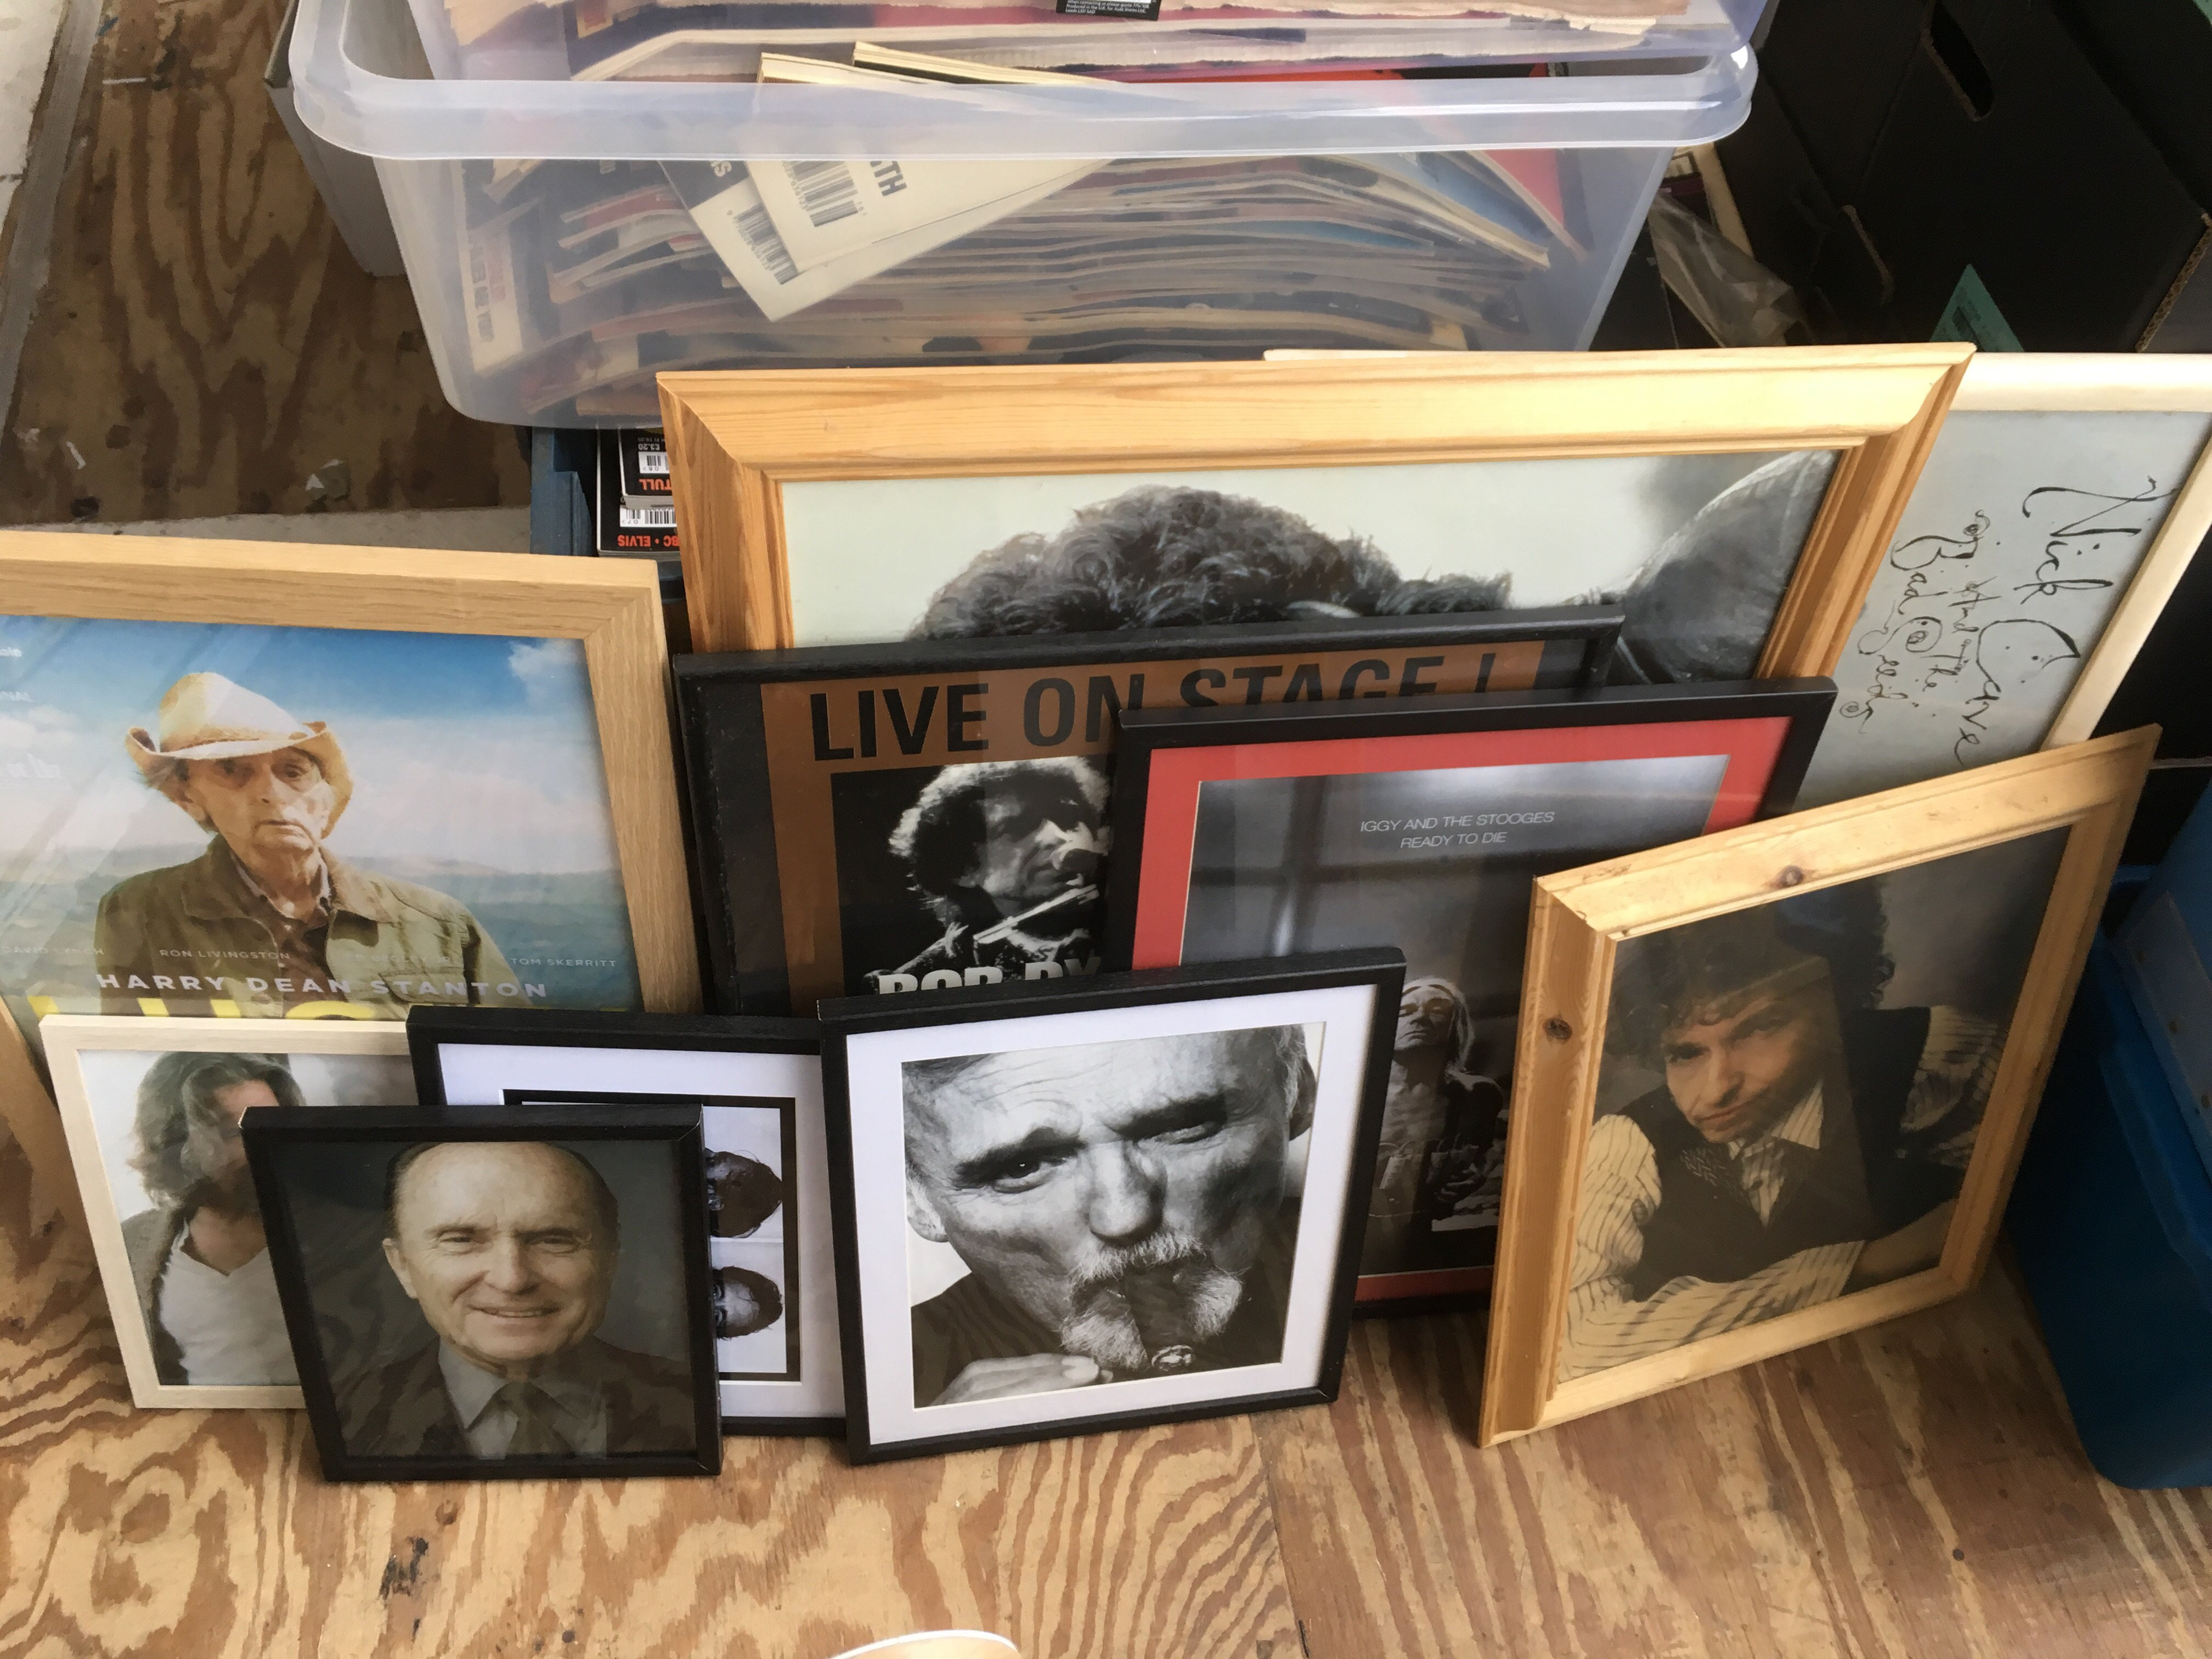 Lot 1315 - A collection of framed and unframed posters of mus